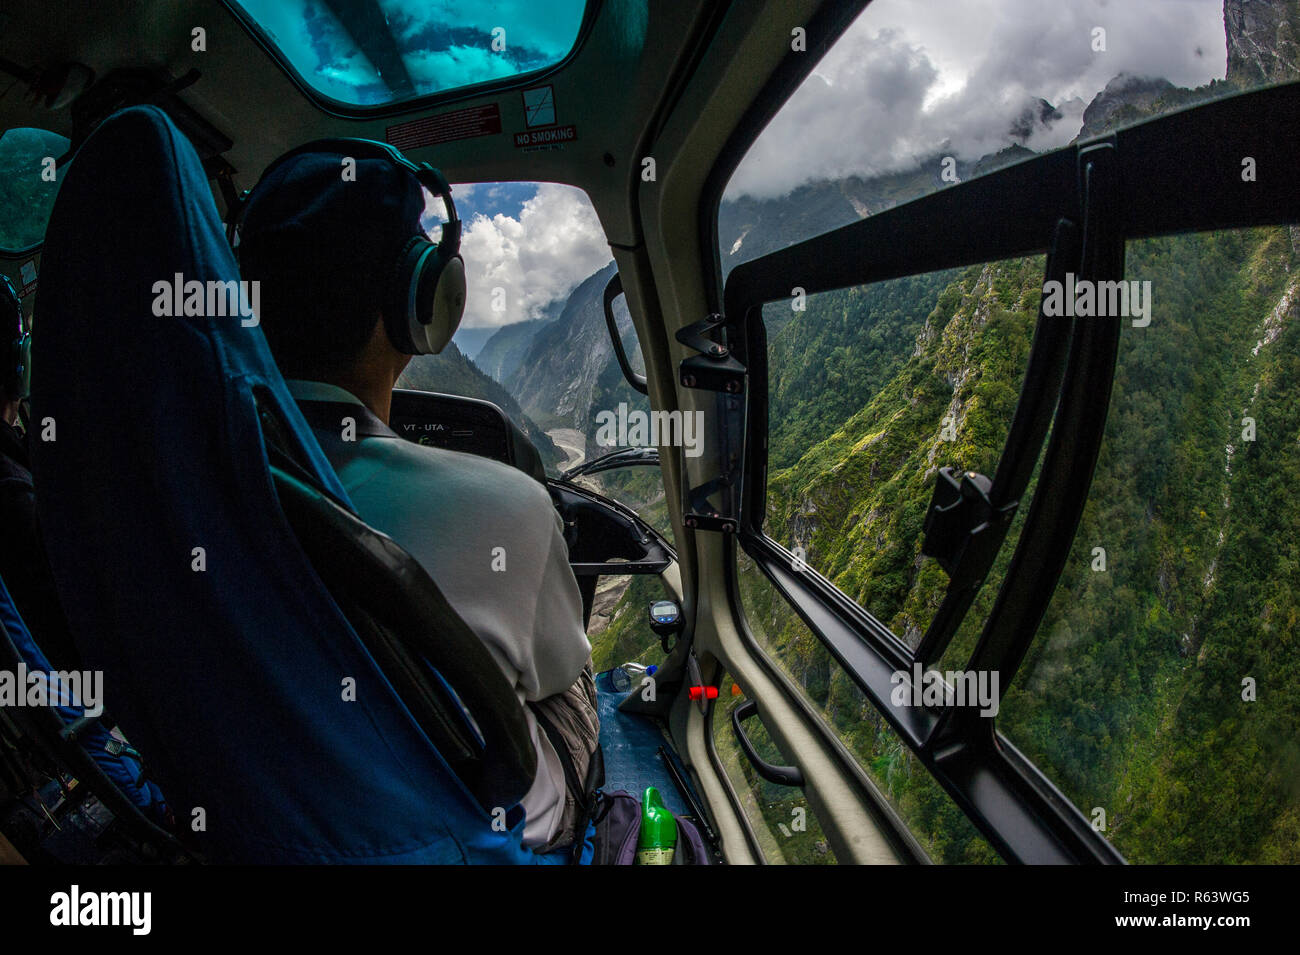 A helicopter flies along the Gori Ganga river towards the Milam Glacier in Pithoragarh District, Uttarakhand in northern India. - Stock Image